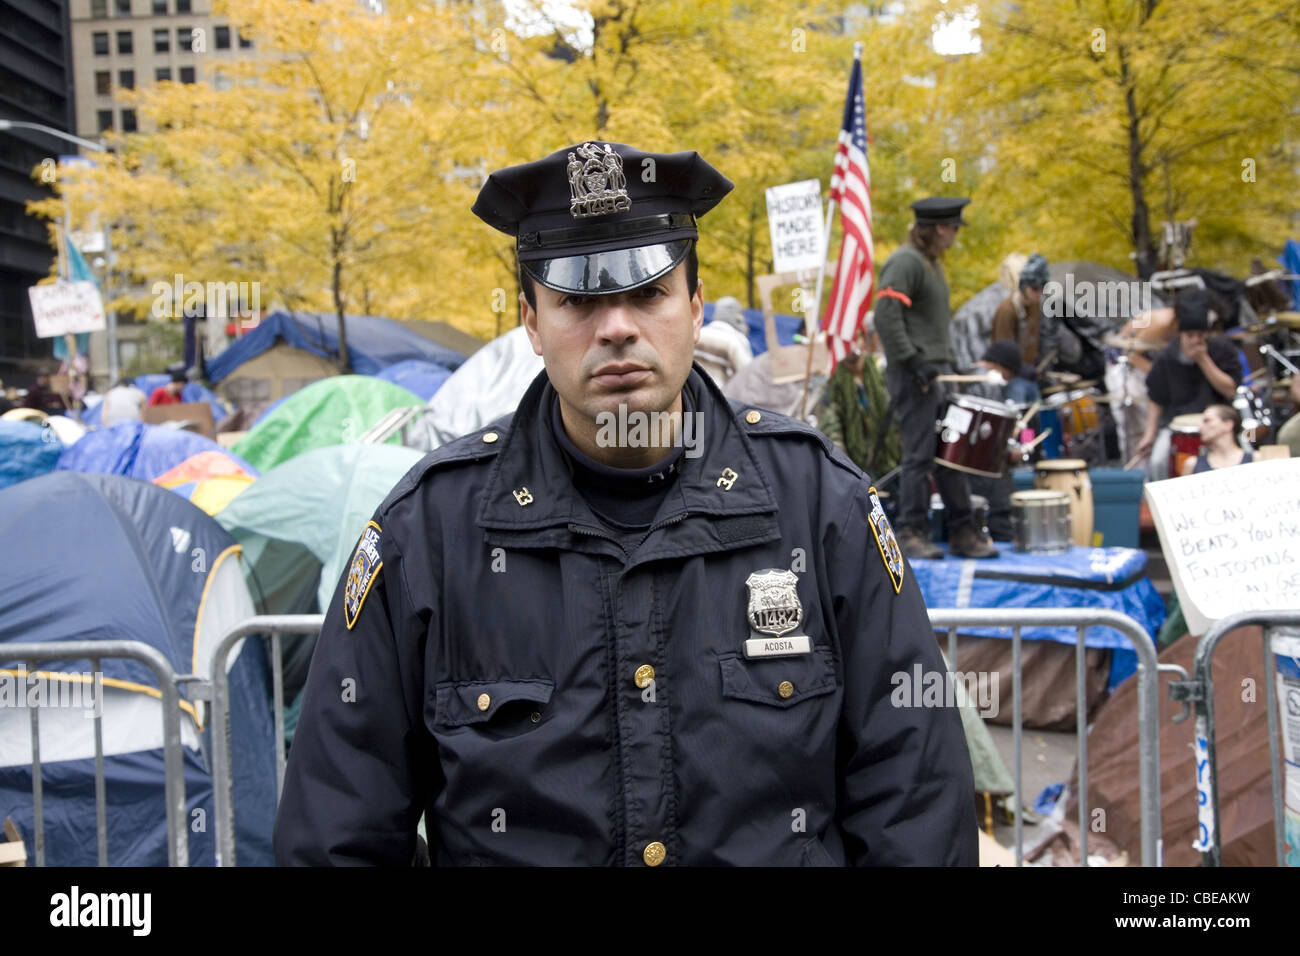 Serious looking NYPD officer at the Occupy Wall Street encampment in downtown Manhattan at Zuccotti Park, New York - Stock Image